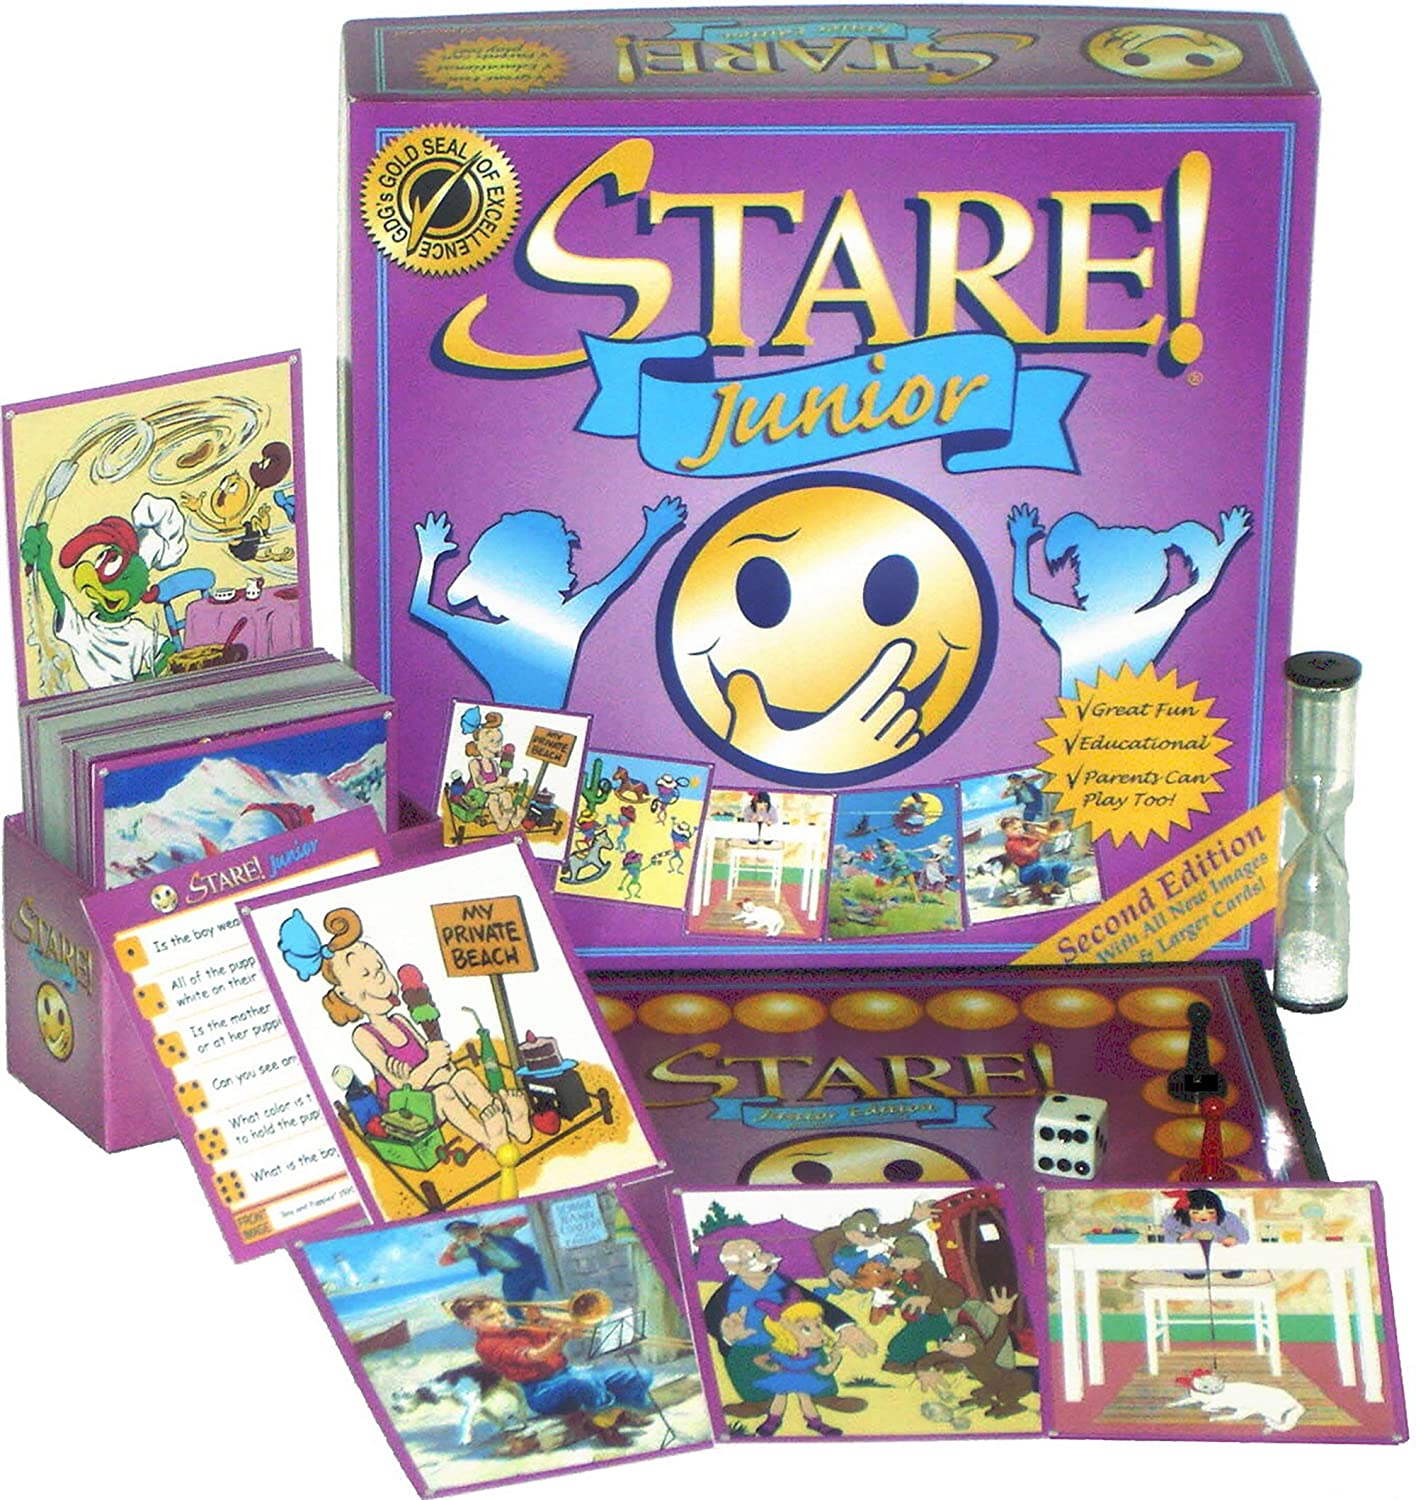 STARE! JUNIOR Game - 2nd Edition Game Development Group Inc. 11105